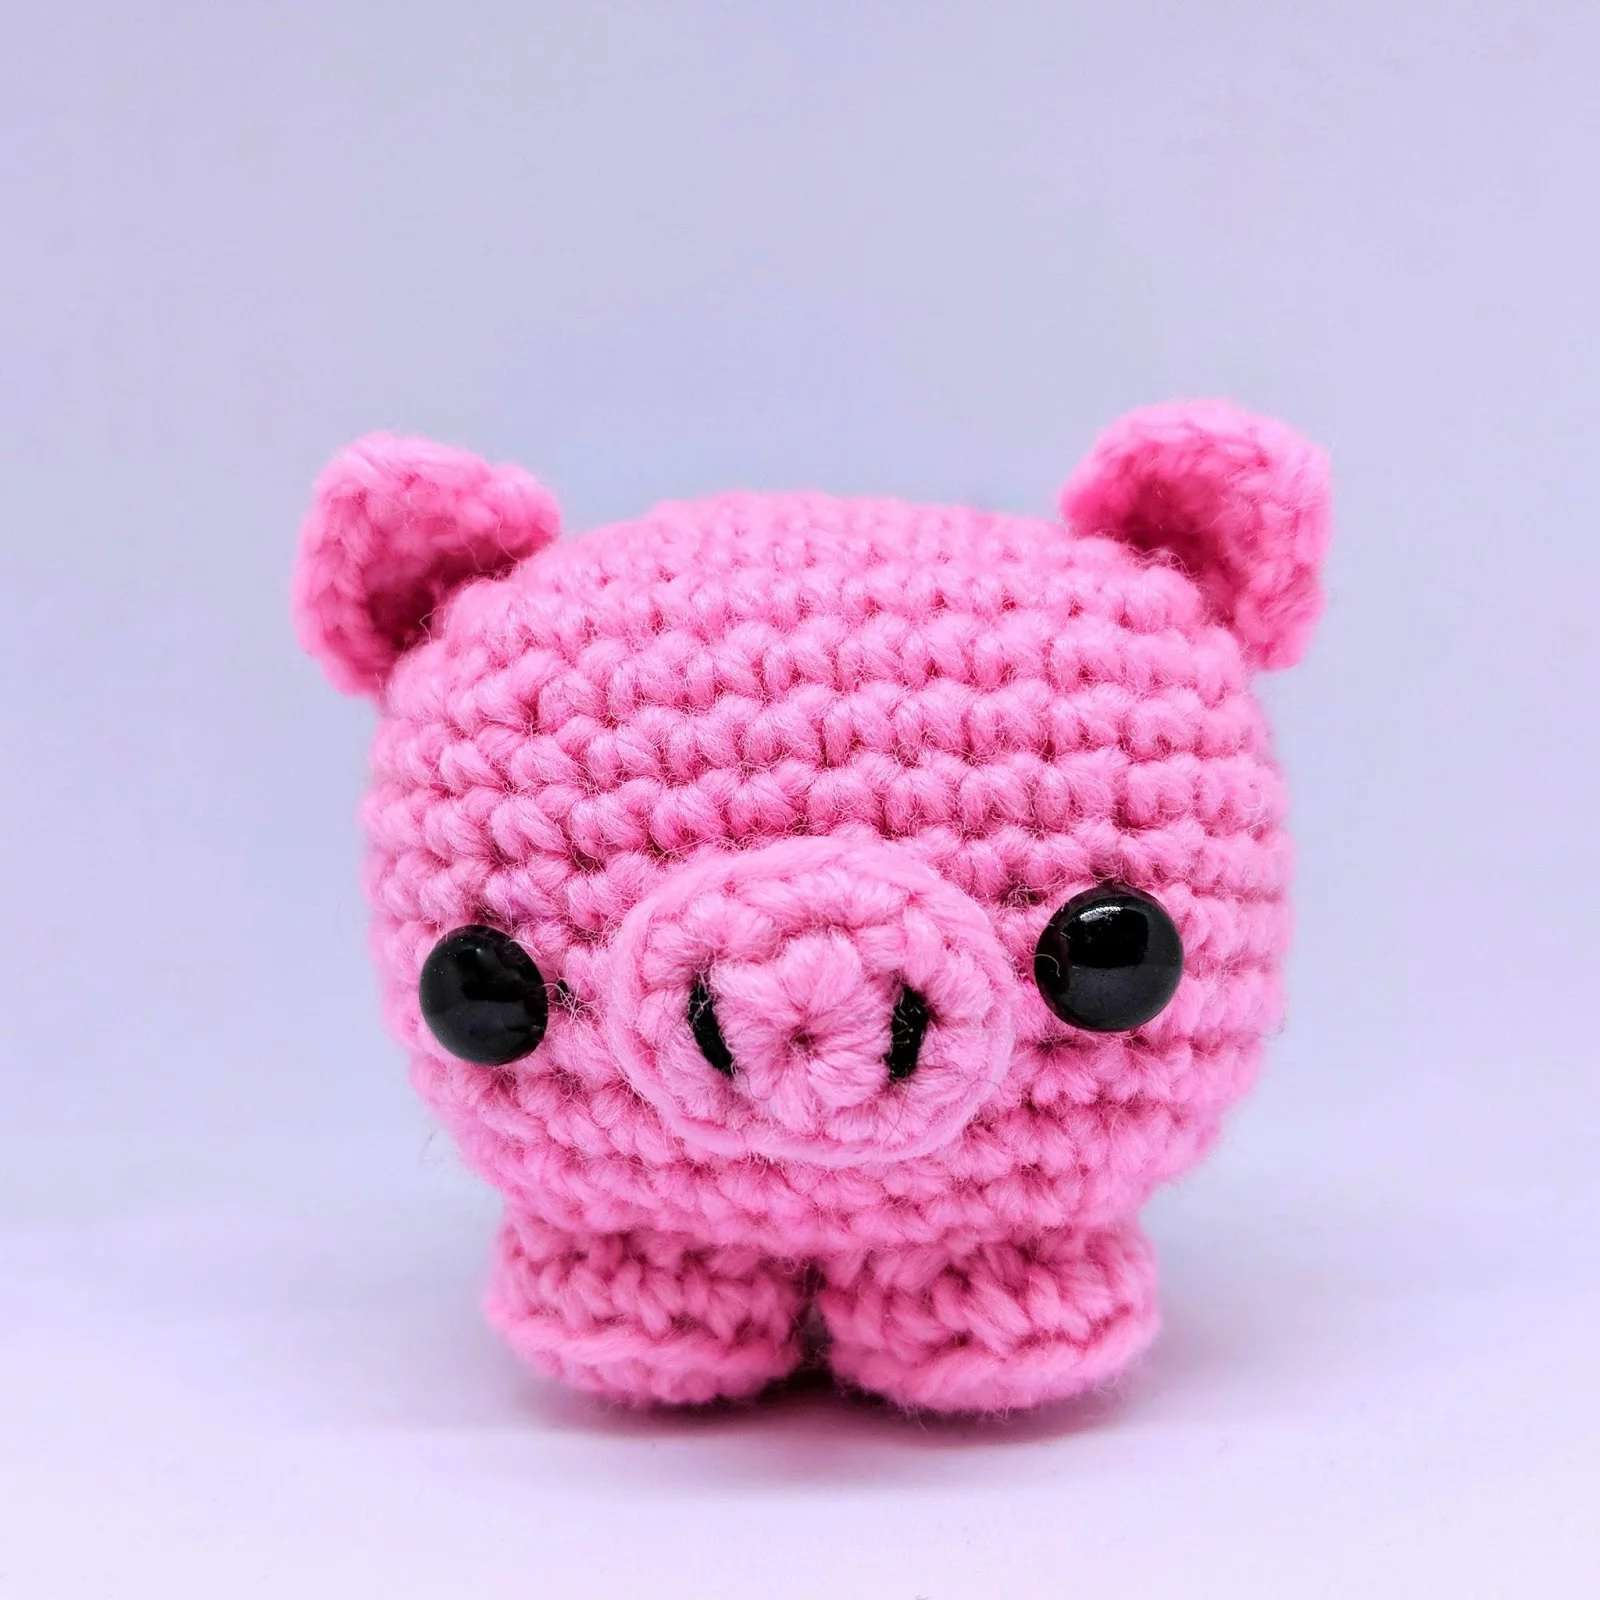 Pink crochet pig with a white background.